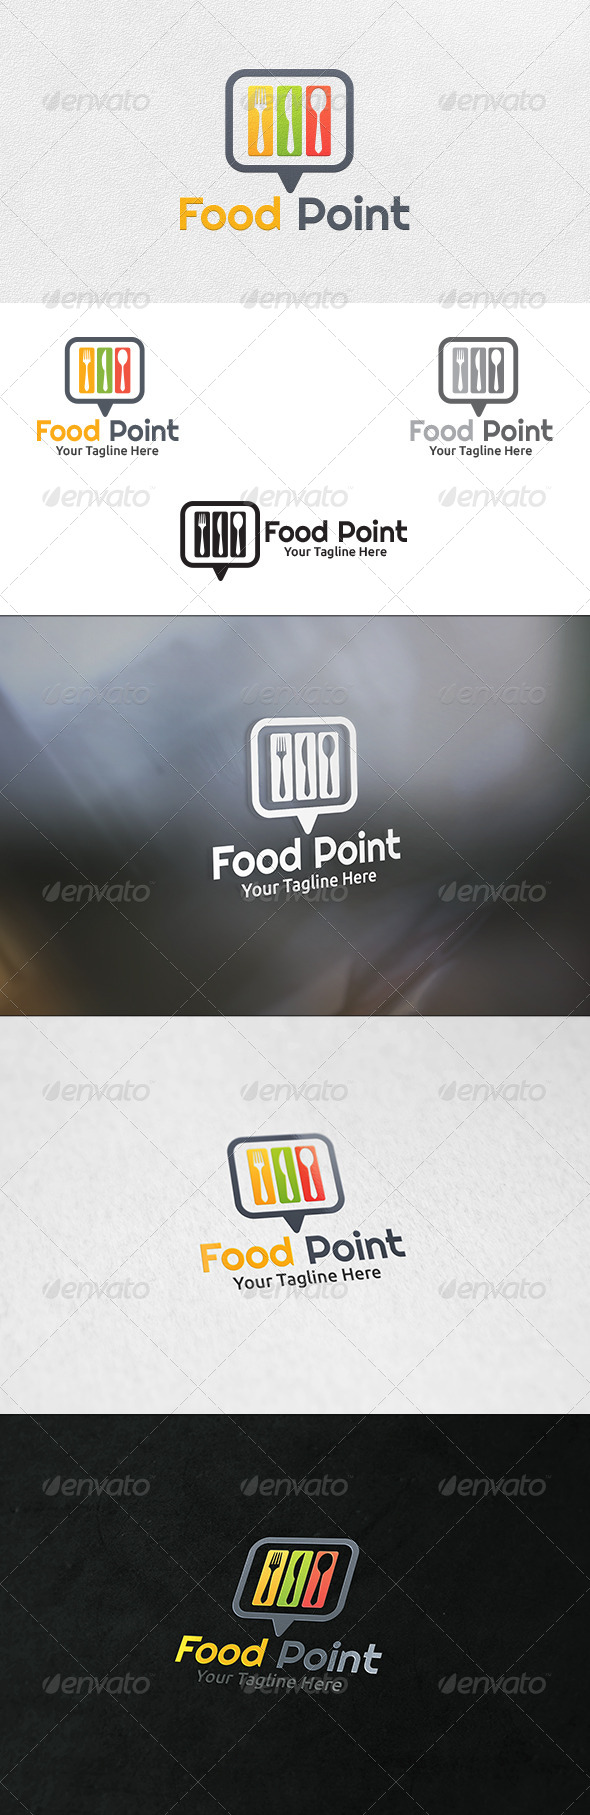 Food Point - Logo Template